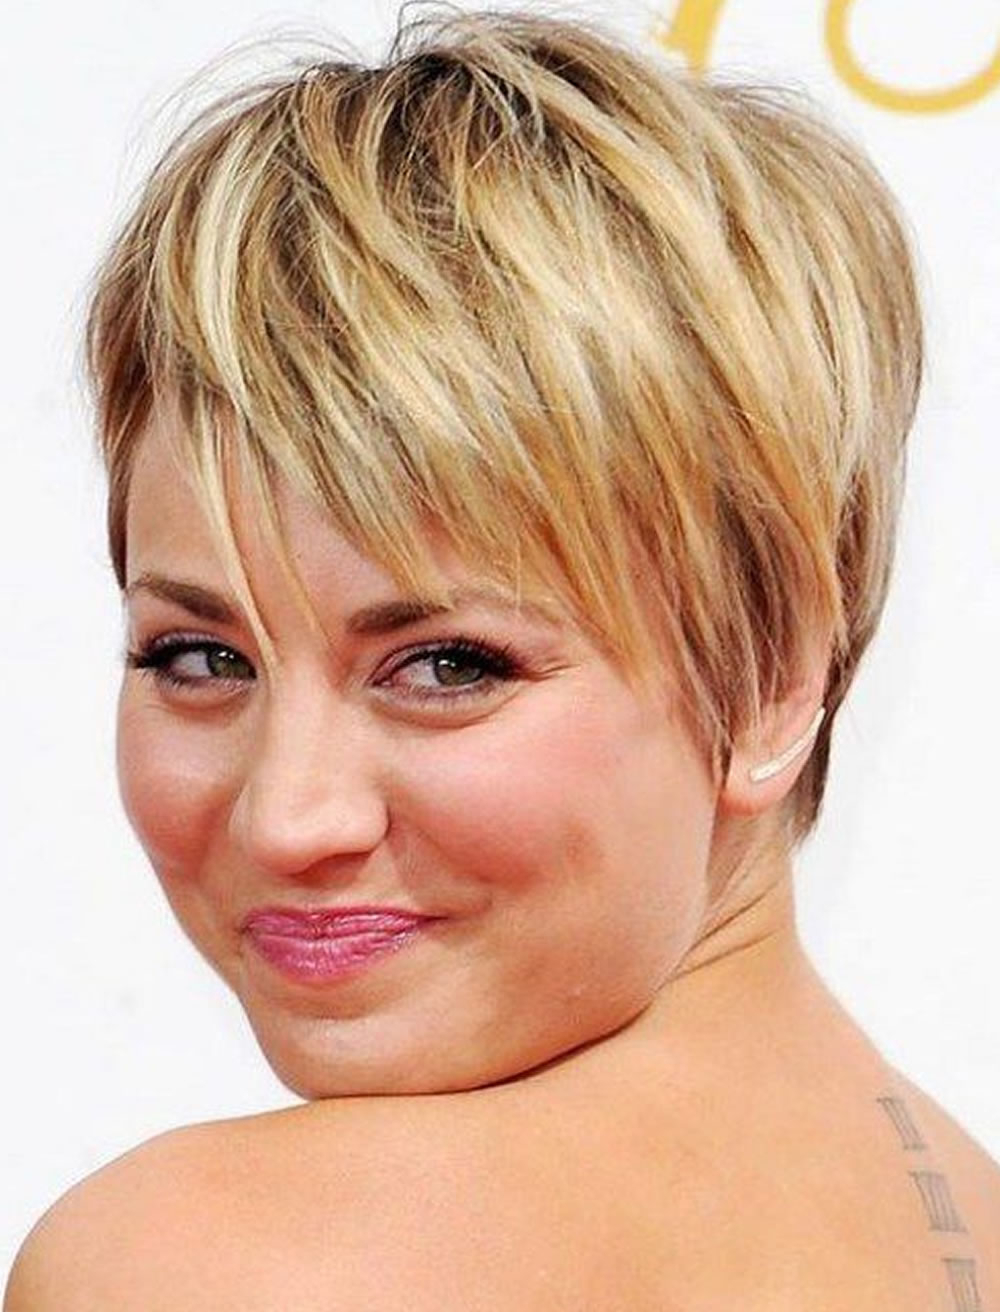 Short Haircuts For Round Face Thin Hair Ideas For 2018 – Page 2 Pertaining To Short Haircuts For Thin Faces (View 9 of 25)